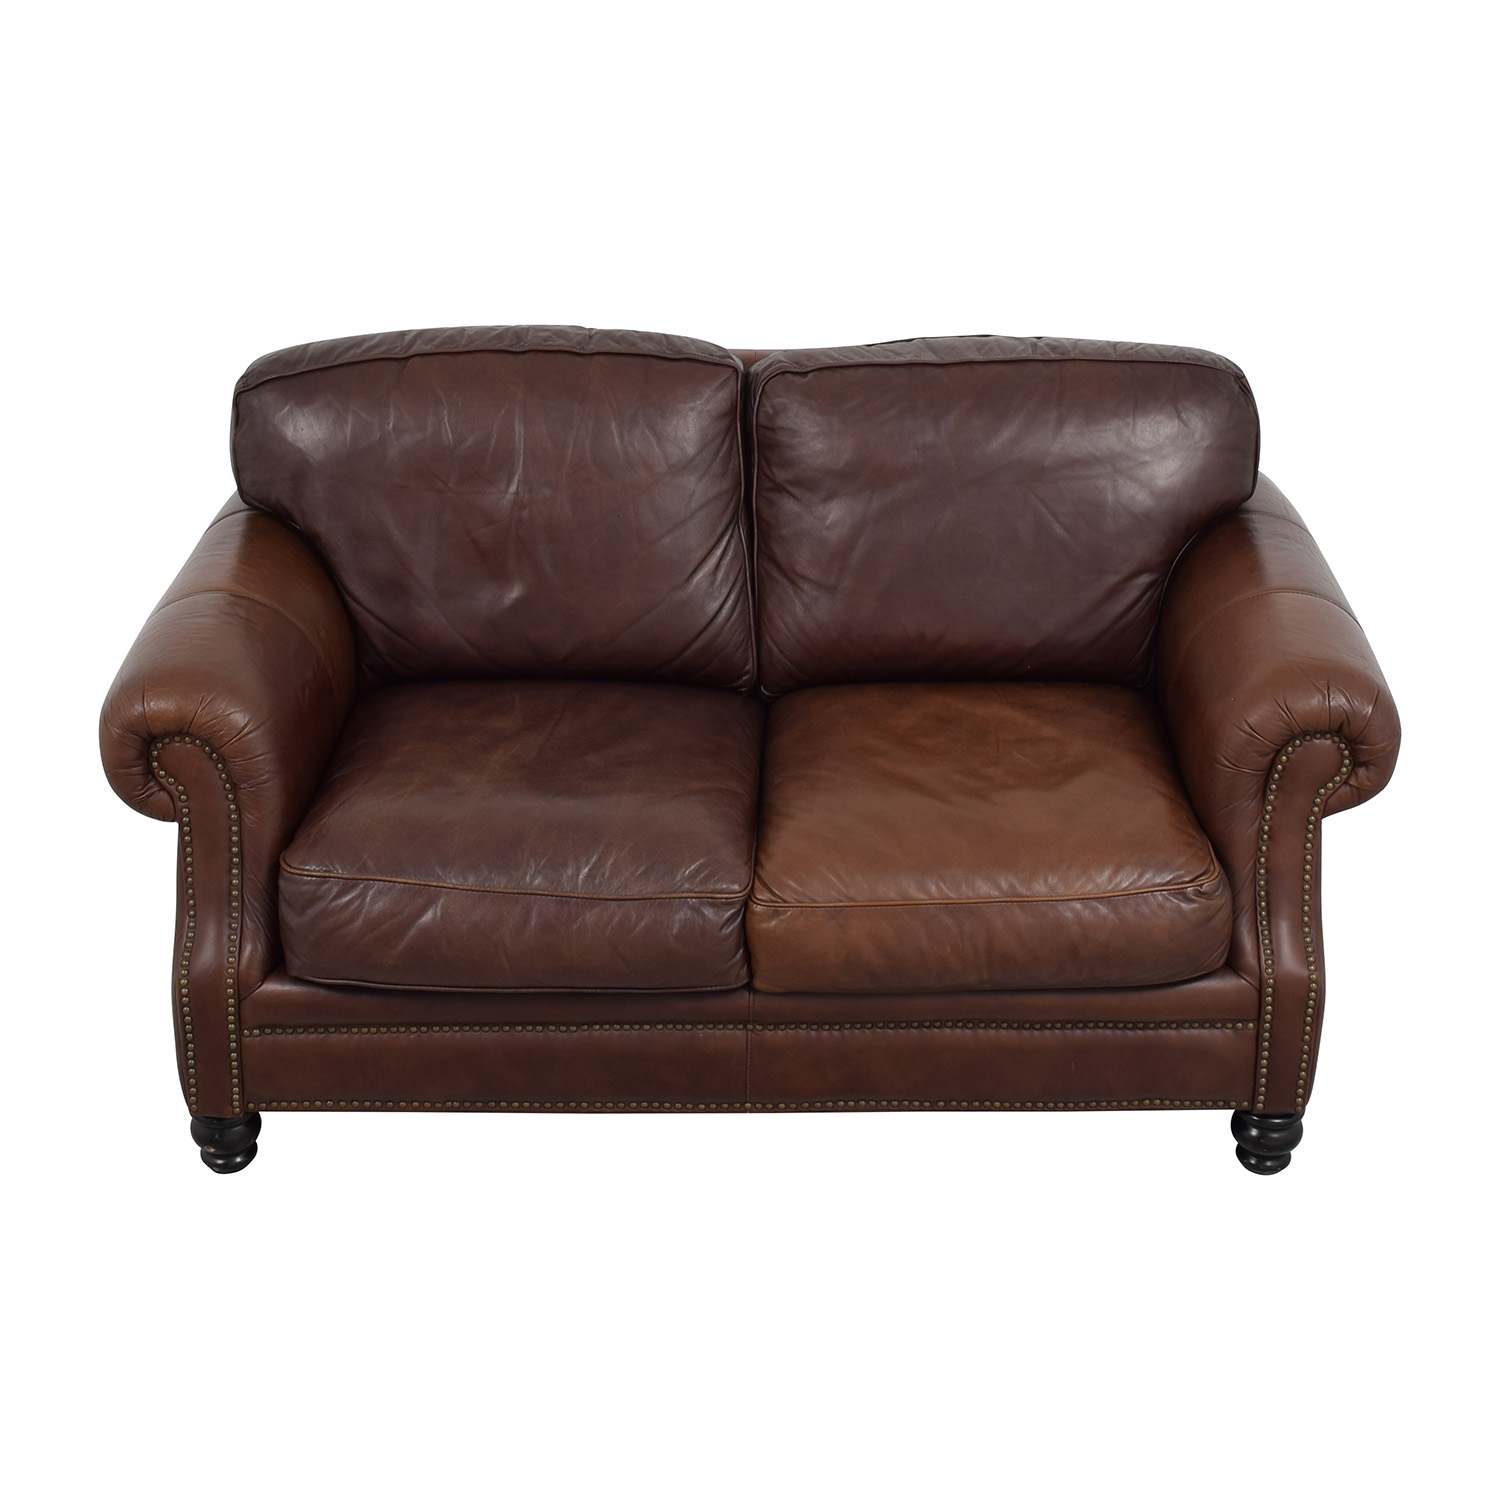 brown leather studded sofa palliser queen bed sofas second hand